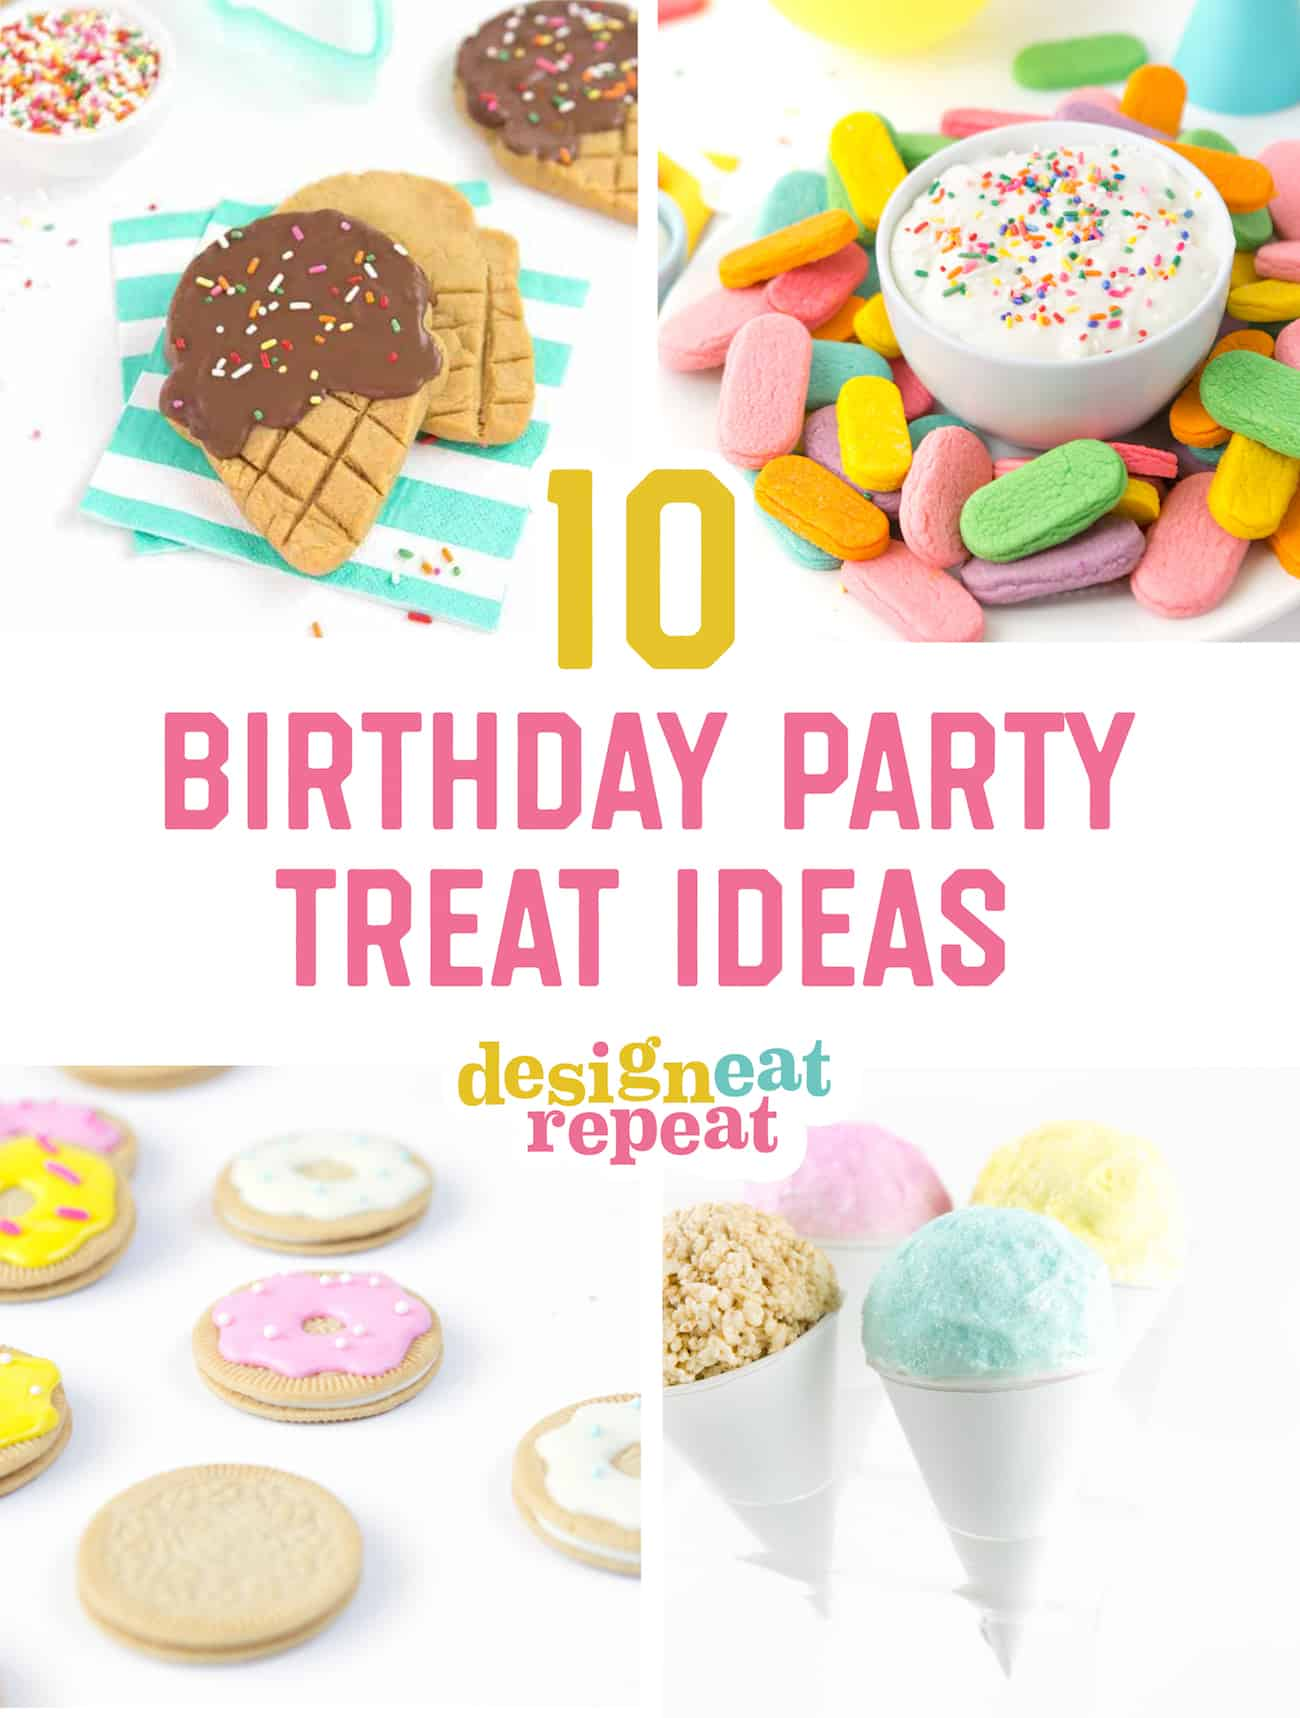 10 Easy and Adorable Birthday Party Treats